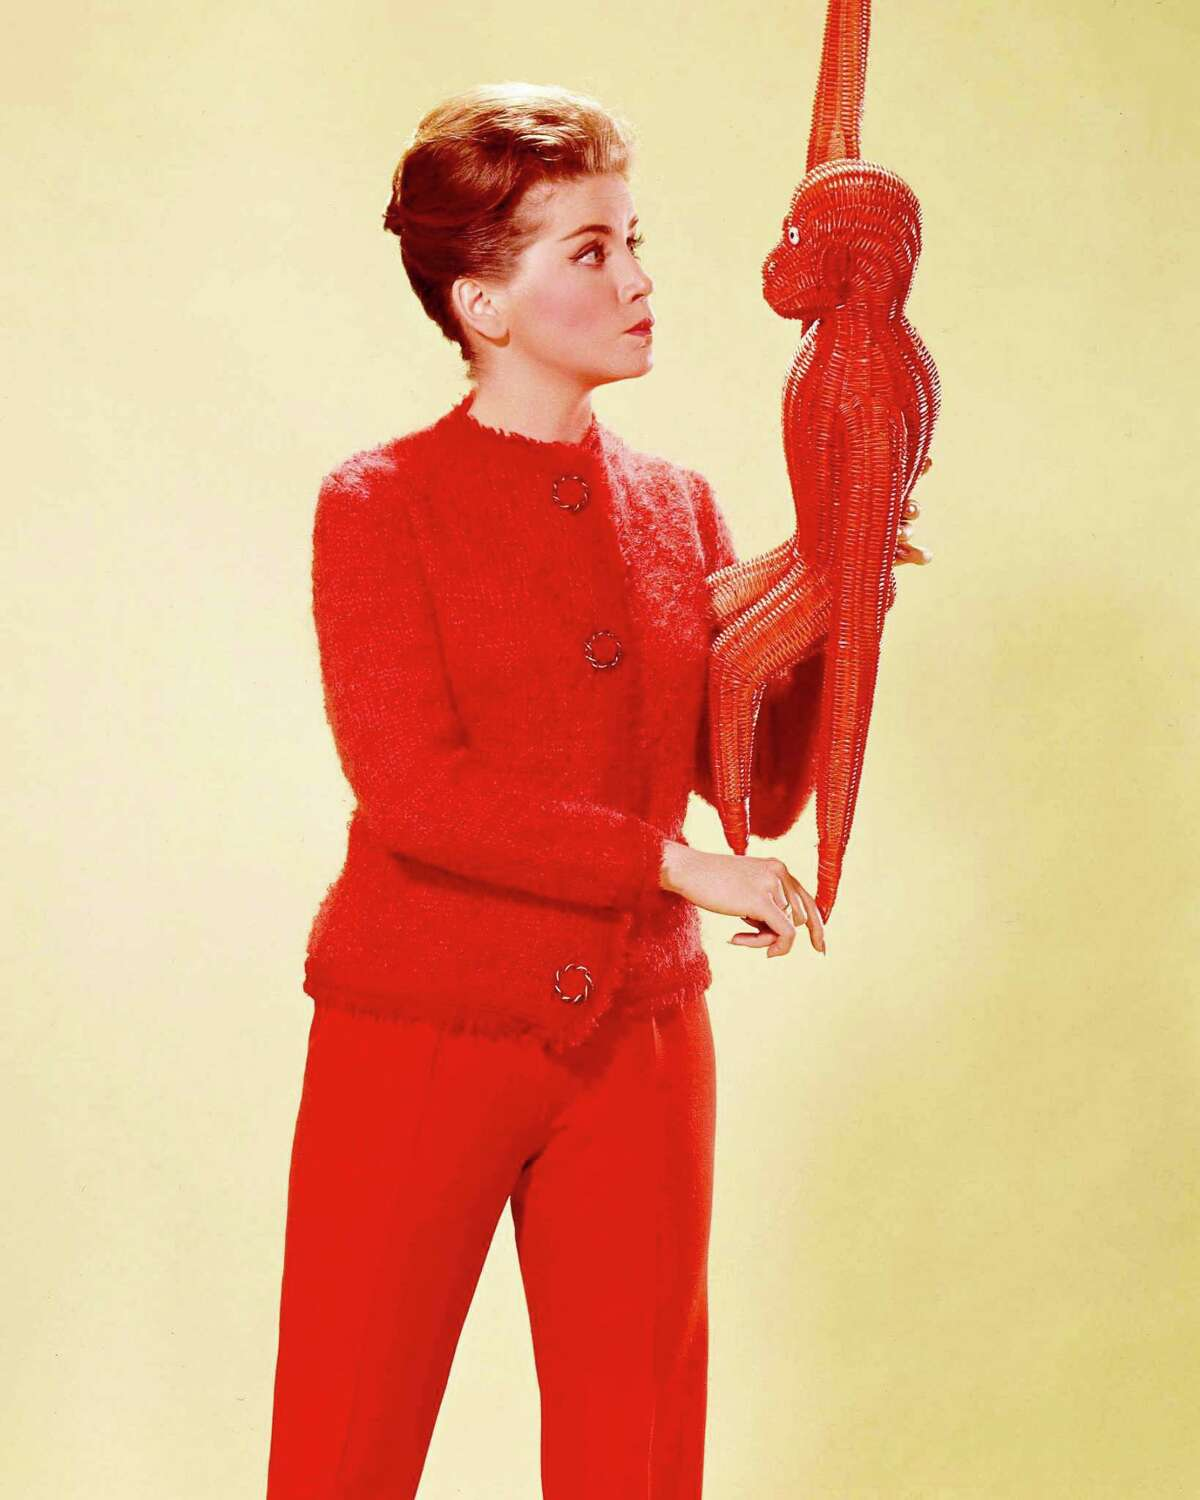 Dolores Hart, US actress, wearing red trousers and a knitted red cardigan, and holding a red wicker monkey, circa 1960. (Photo by Silver Screen Collection/Getty Images)